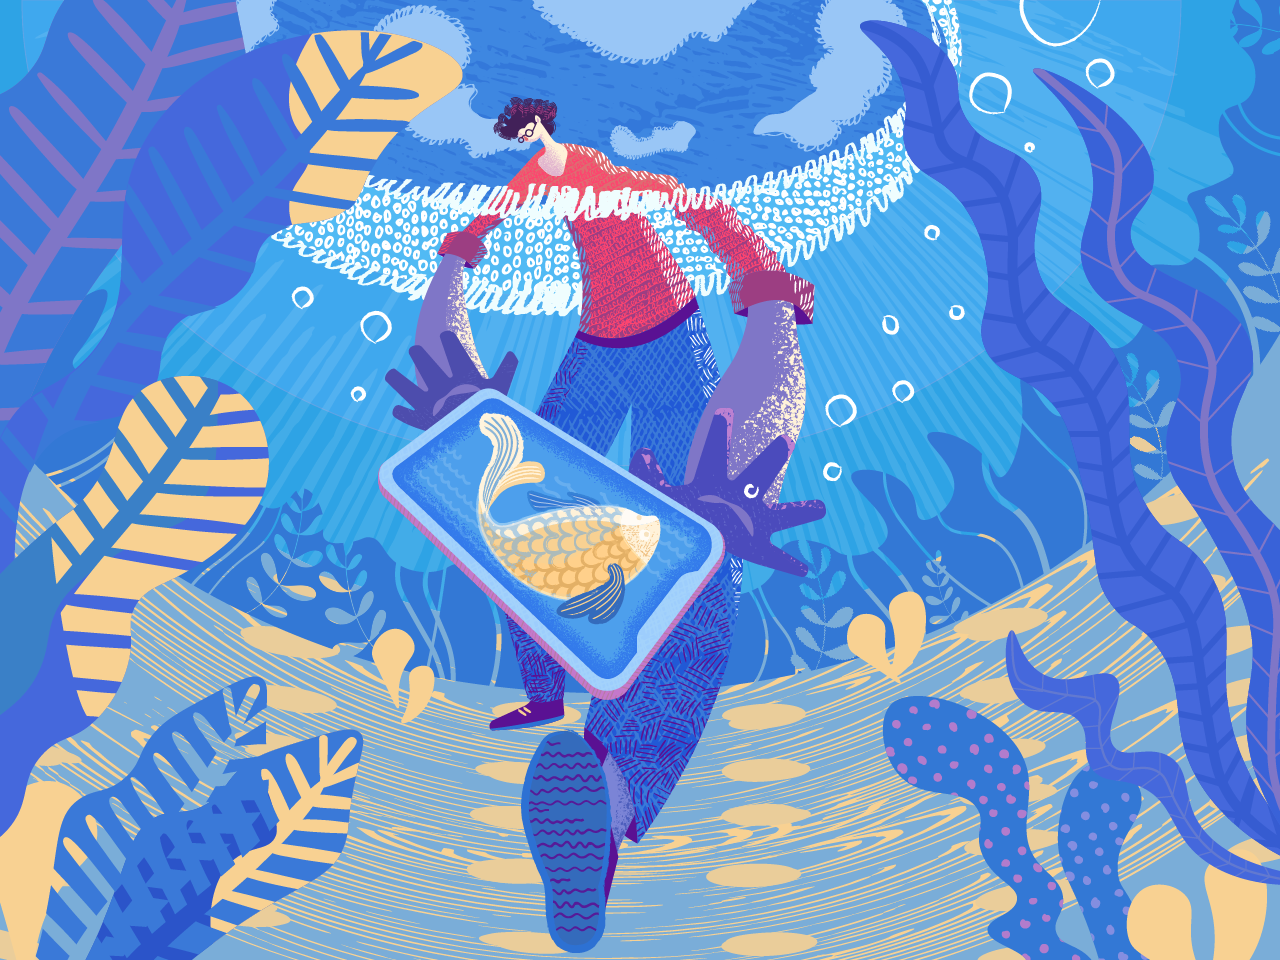 Graphic Design Styles: How To Create Original Flat Illustrations: Tips From